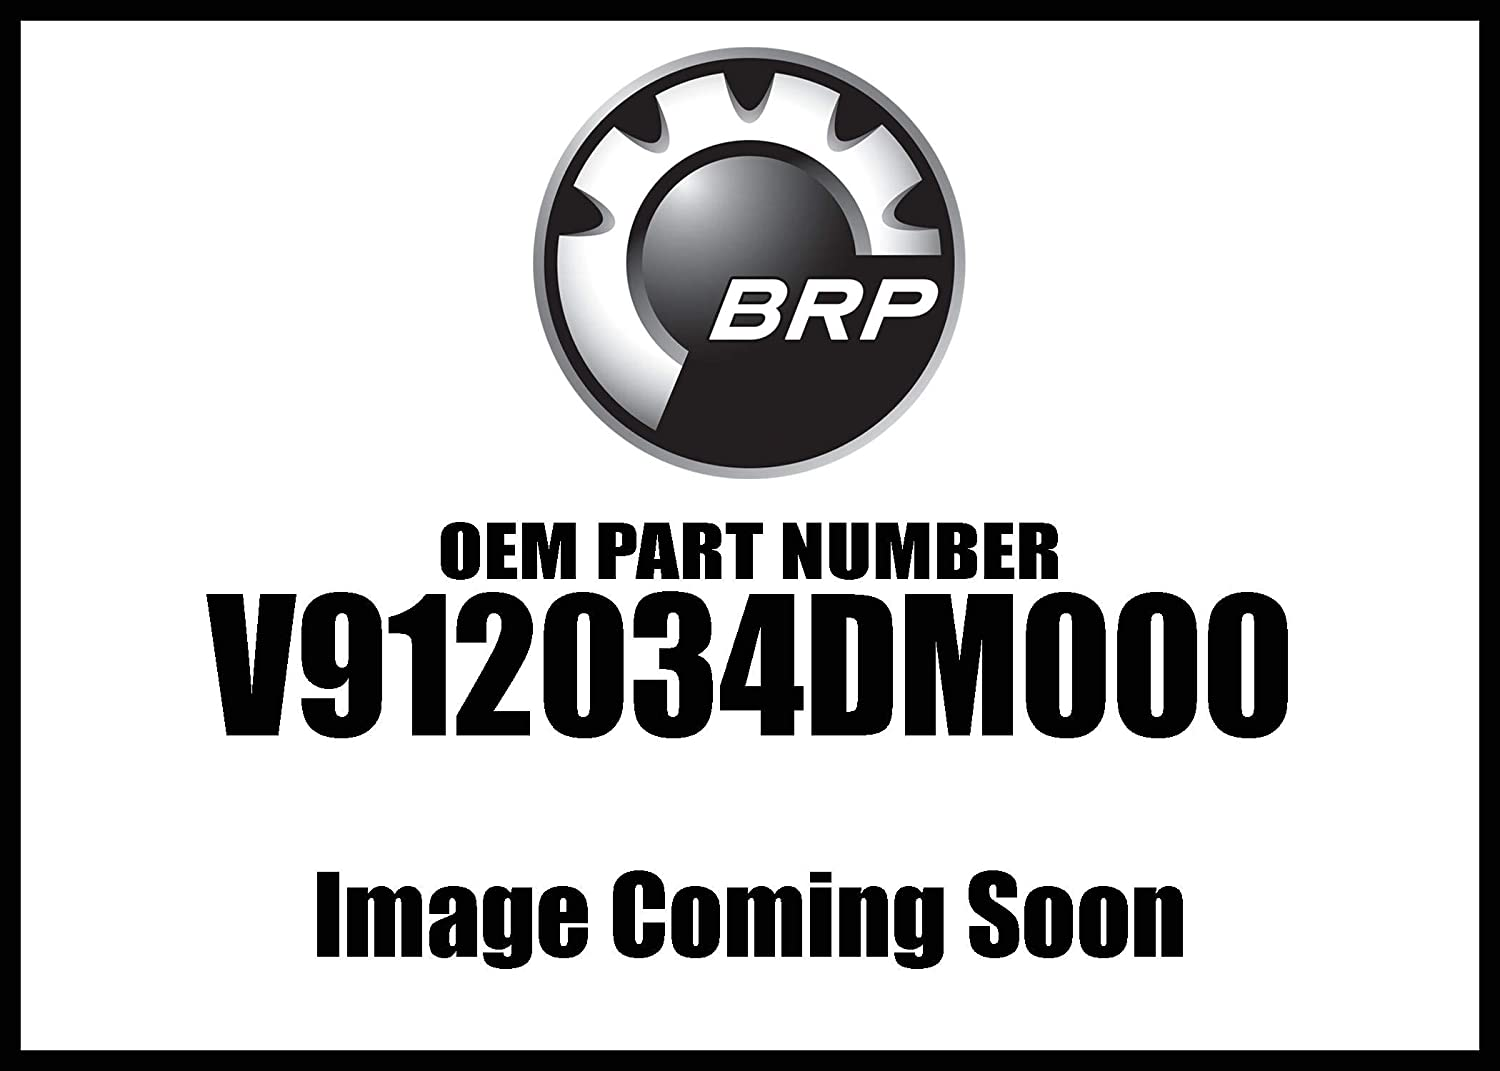 Can-Am 2008-2018 Ds 90 Ds 70 Mini O Ring V912034dm000 New Oem